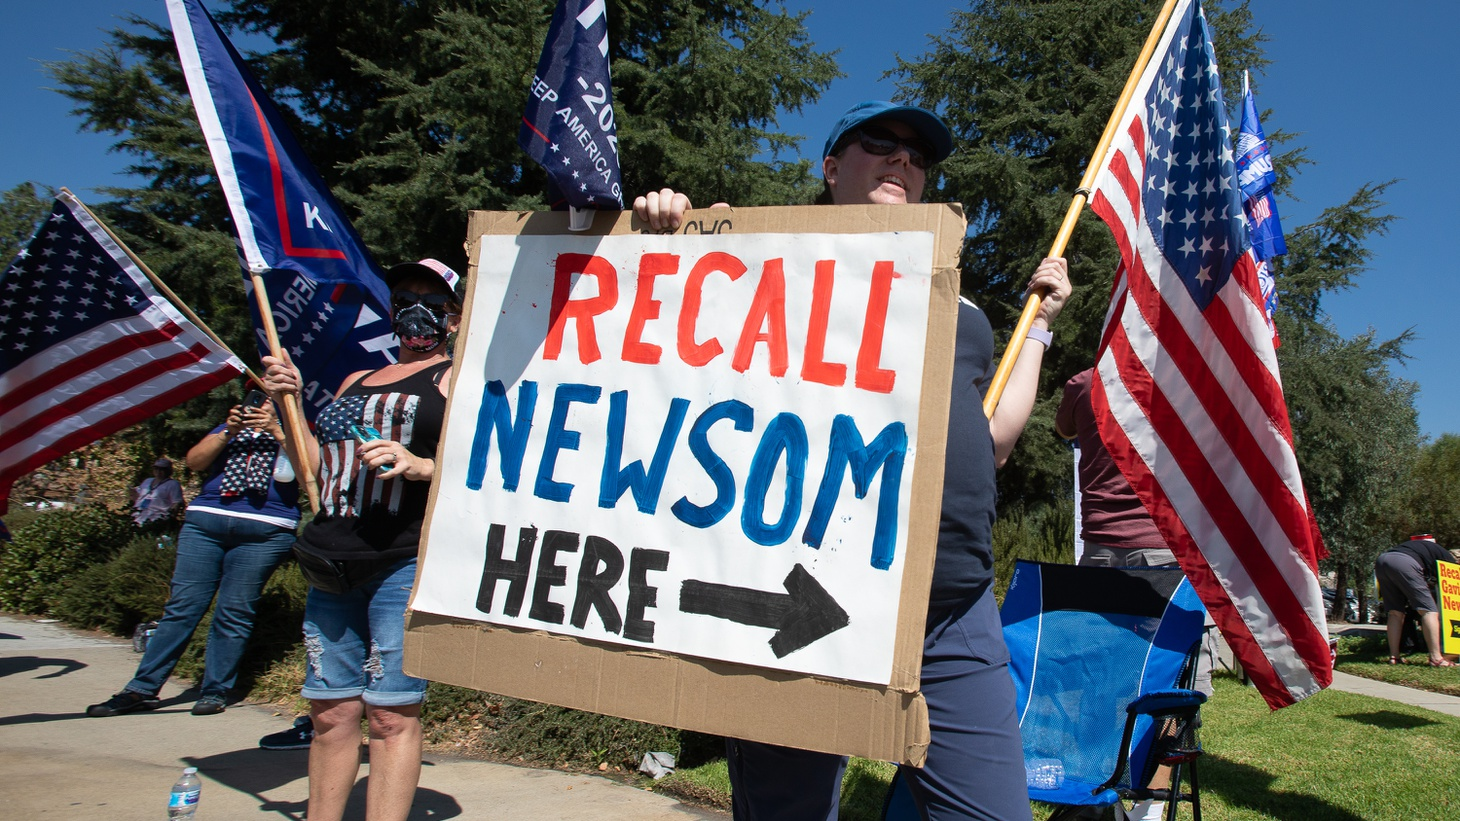 September 14 is the last day for Californians to vote in the gubernatorial recall election. Recall supporters are making a final push to remove Governor Gavin Newsom from office.